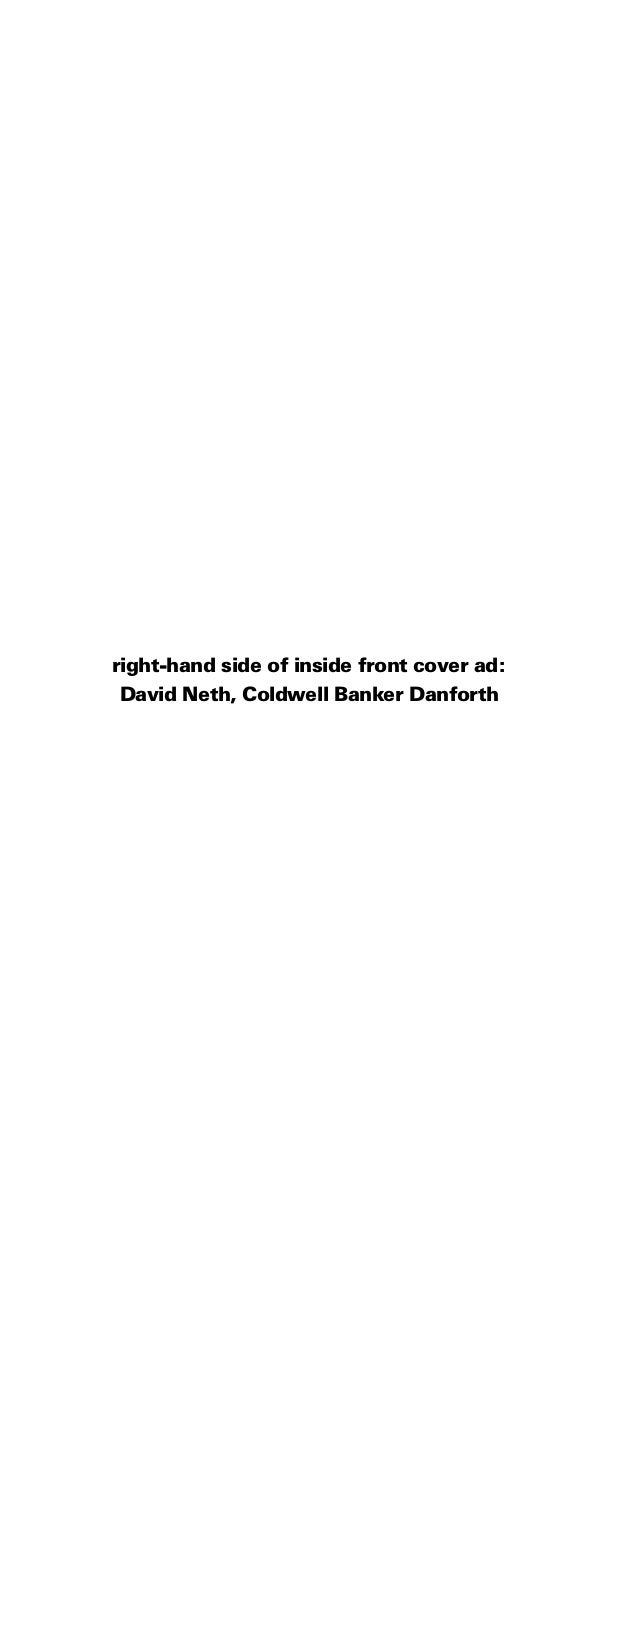 right-hand side of inside front cover ad: David Neth, Coldwell Banker Danforth